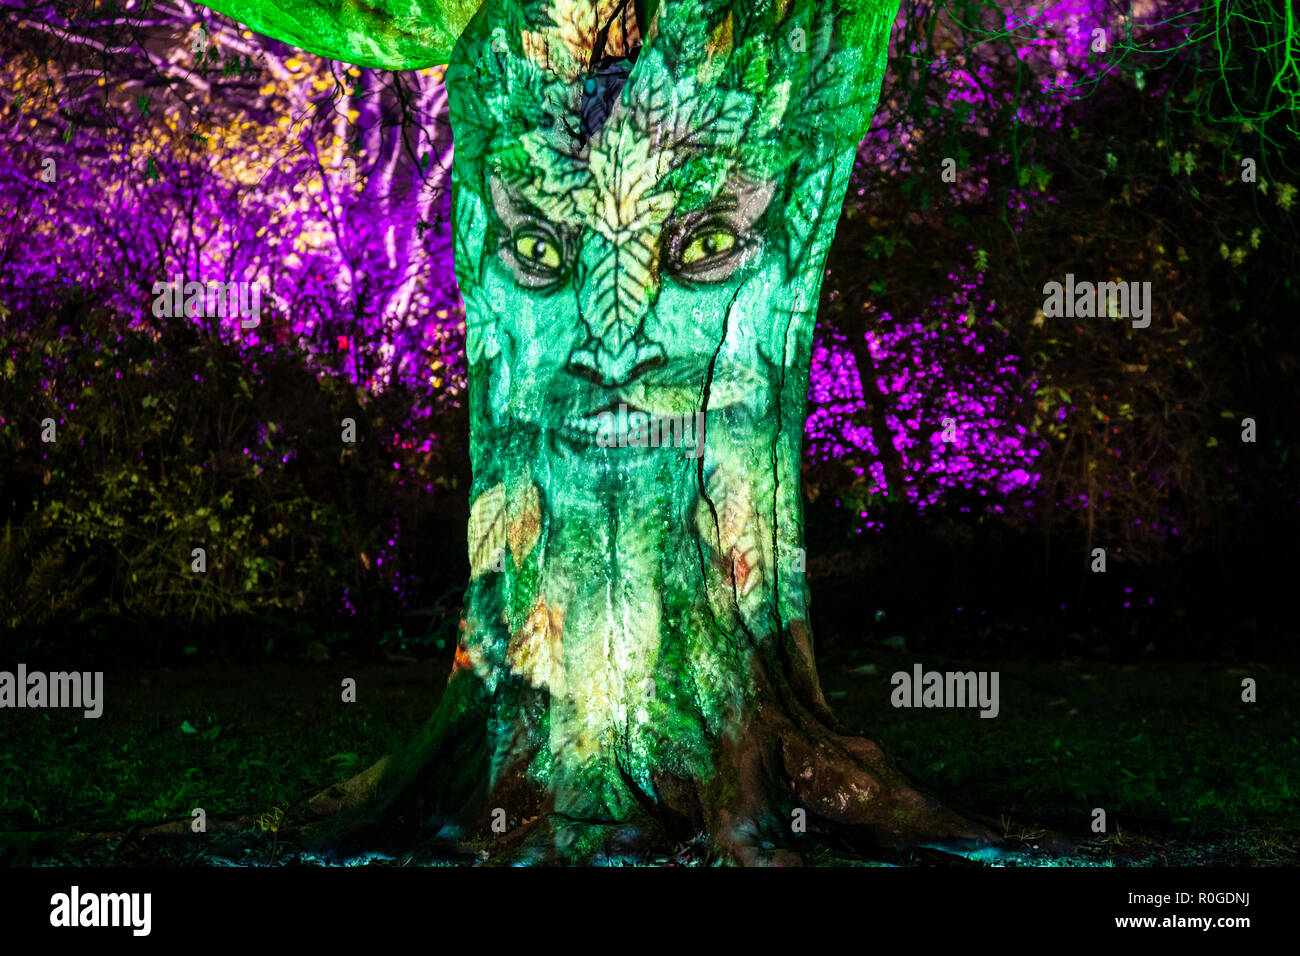 Spooky face projected onto a 'talking' tree at GlasGLOW, where the Botanic Gardens are lit up at night. - Stock Image